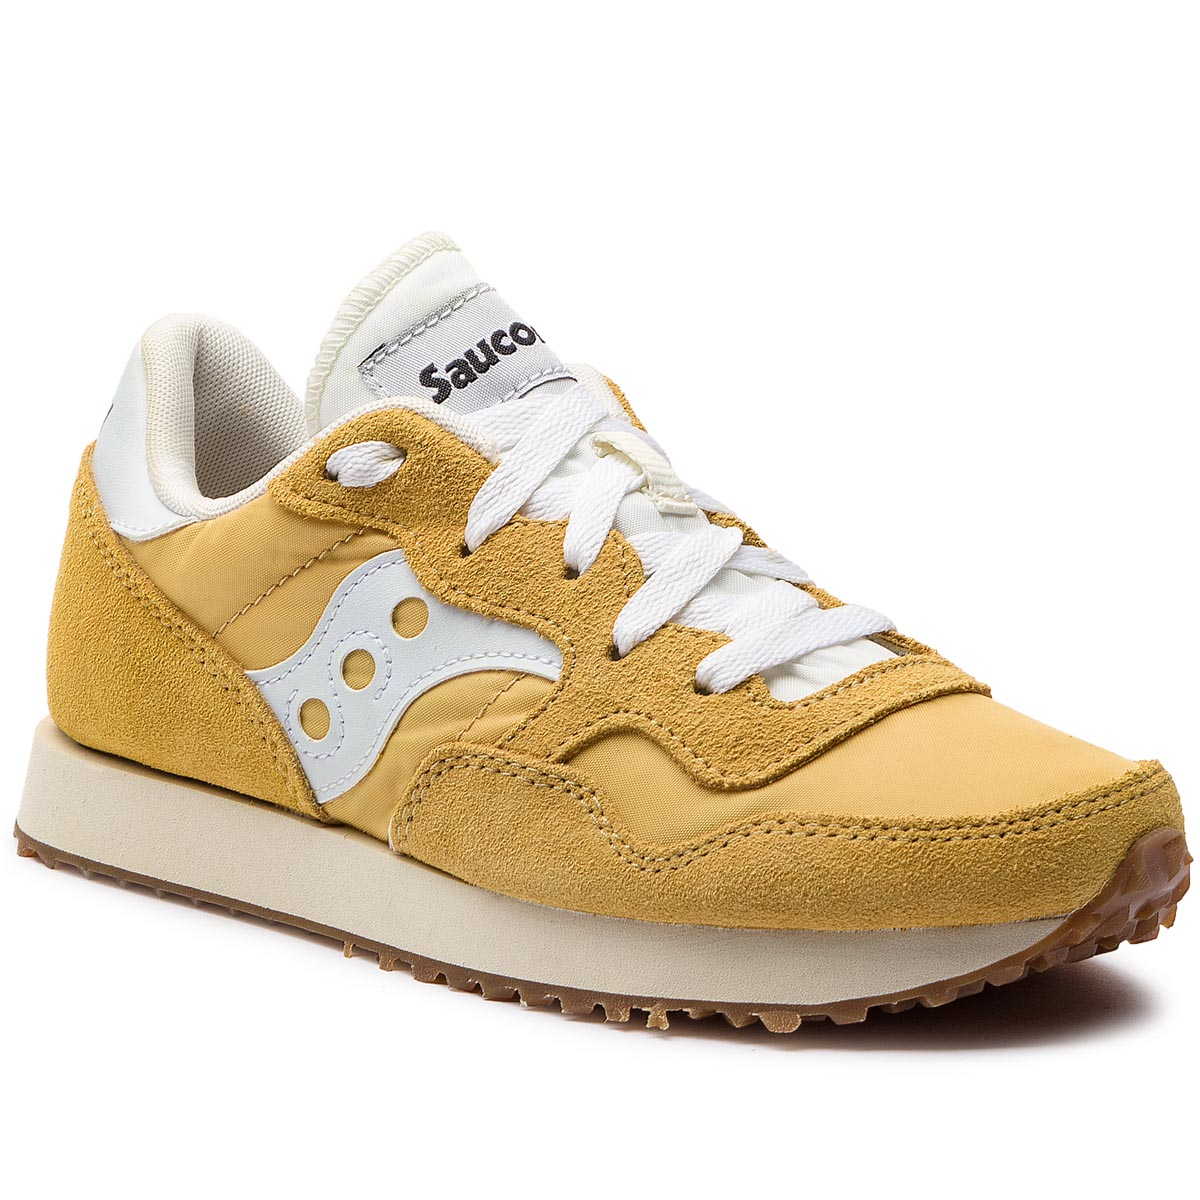 Sneakersy SAUCONY - Dxn Trainer Vintage S60369-38 Yel/Wht